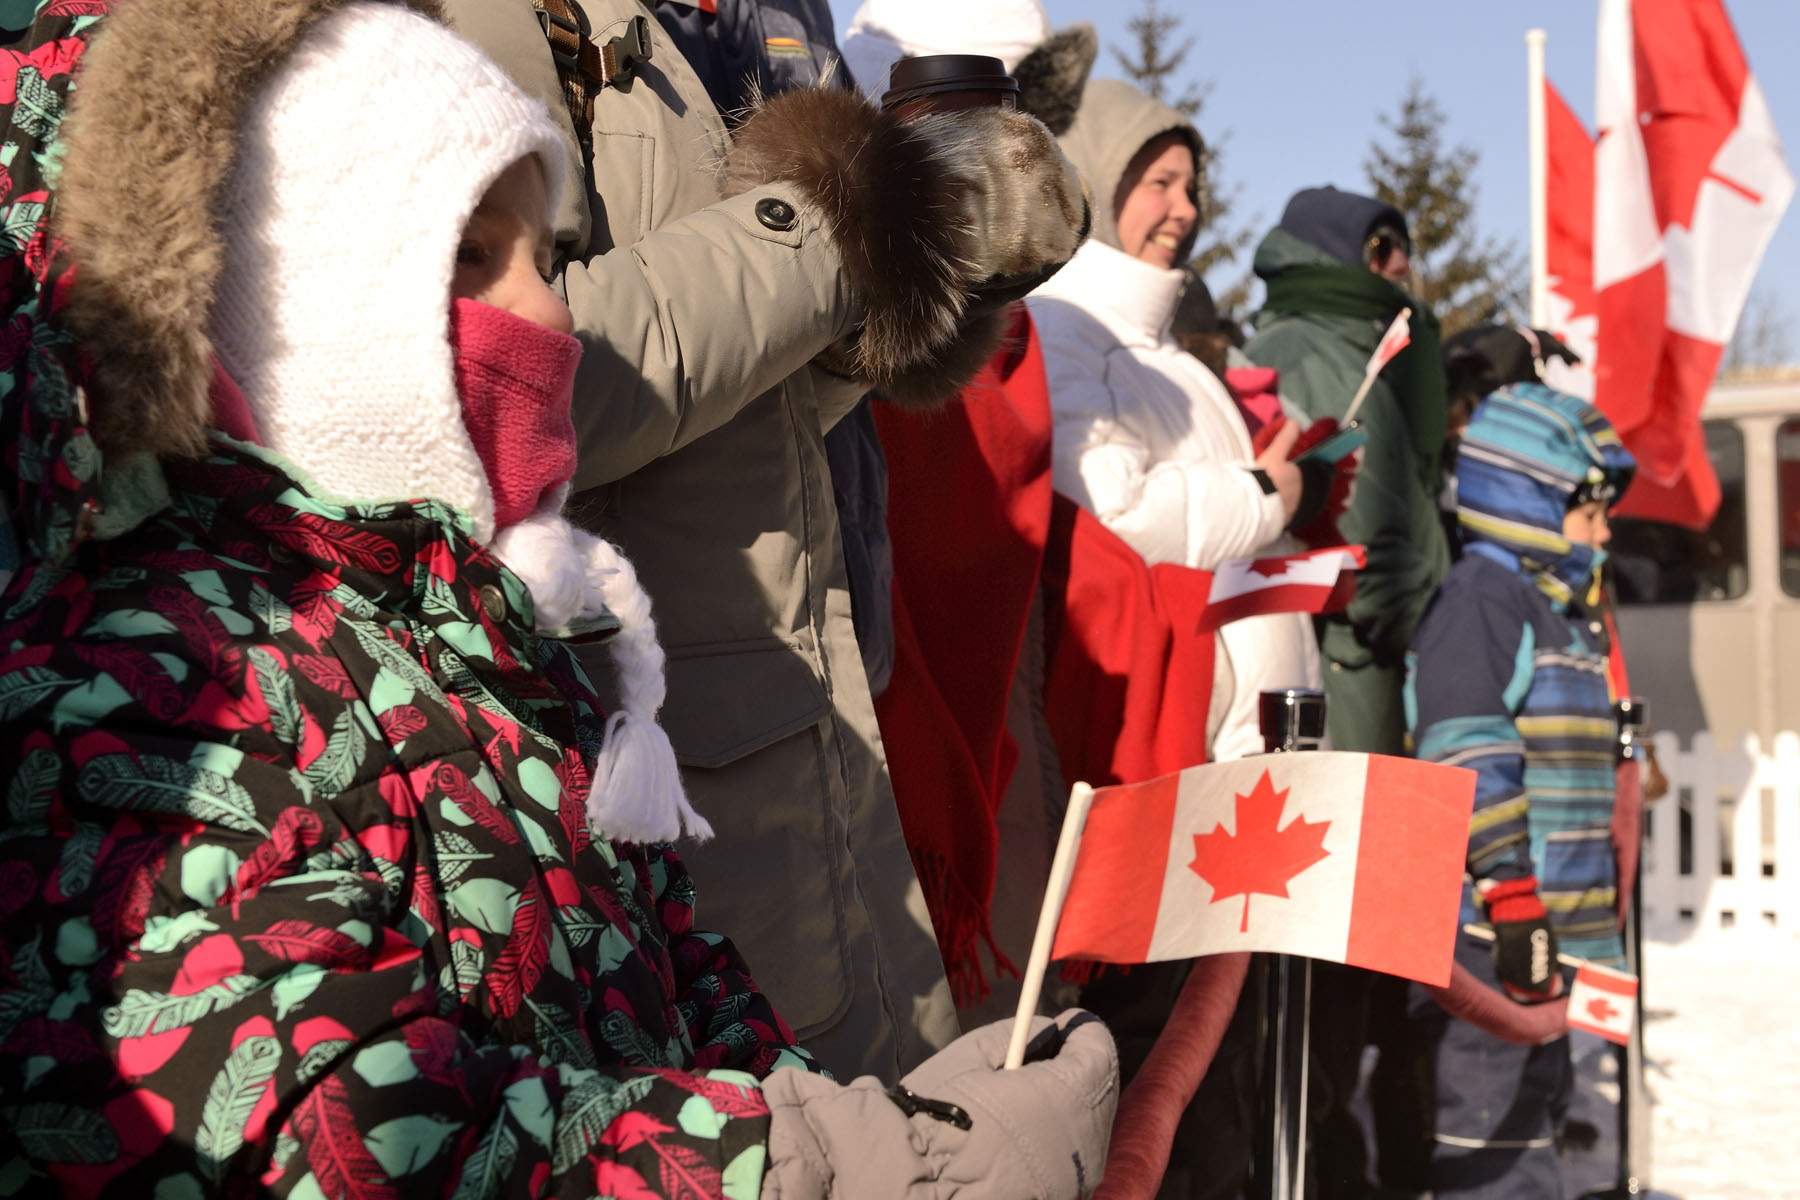 Many Canadians braved the cold to come celebrate the 50th anniversary of the National Flag of Canada at Confederation Park in Ottawa.